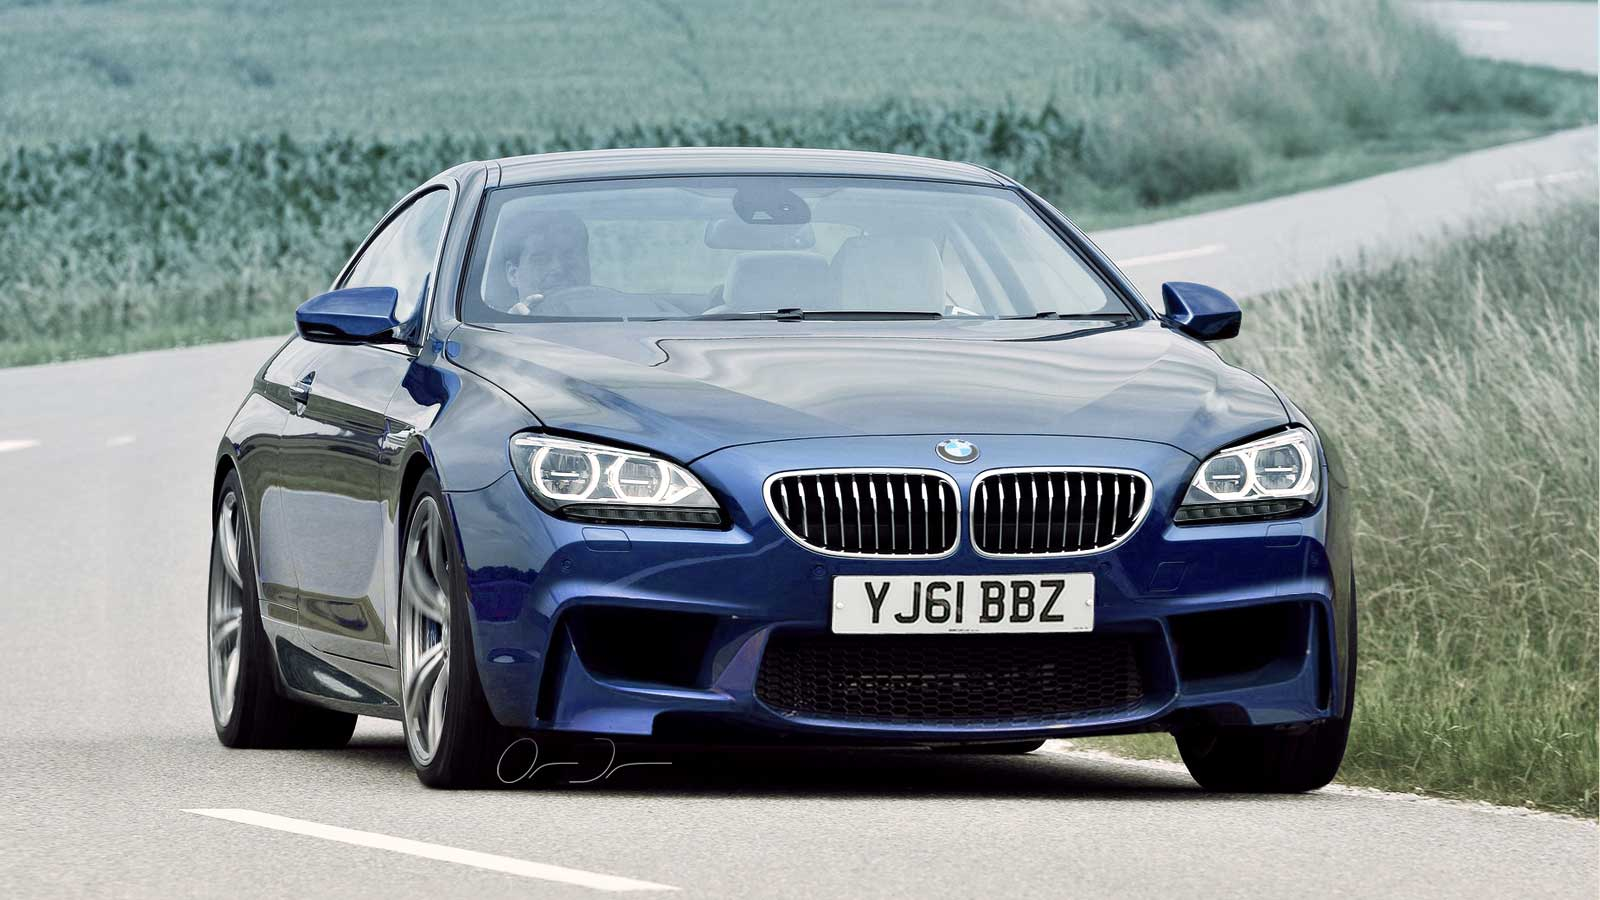 BMW Convertible bmw m6 2011 2011 Bmw M6 convertible (f13) – pictures, information and specs ...